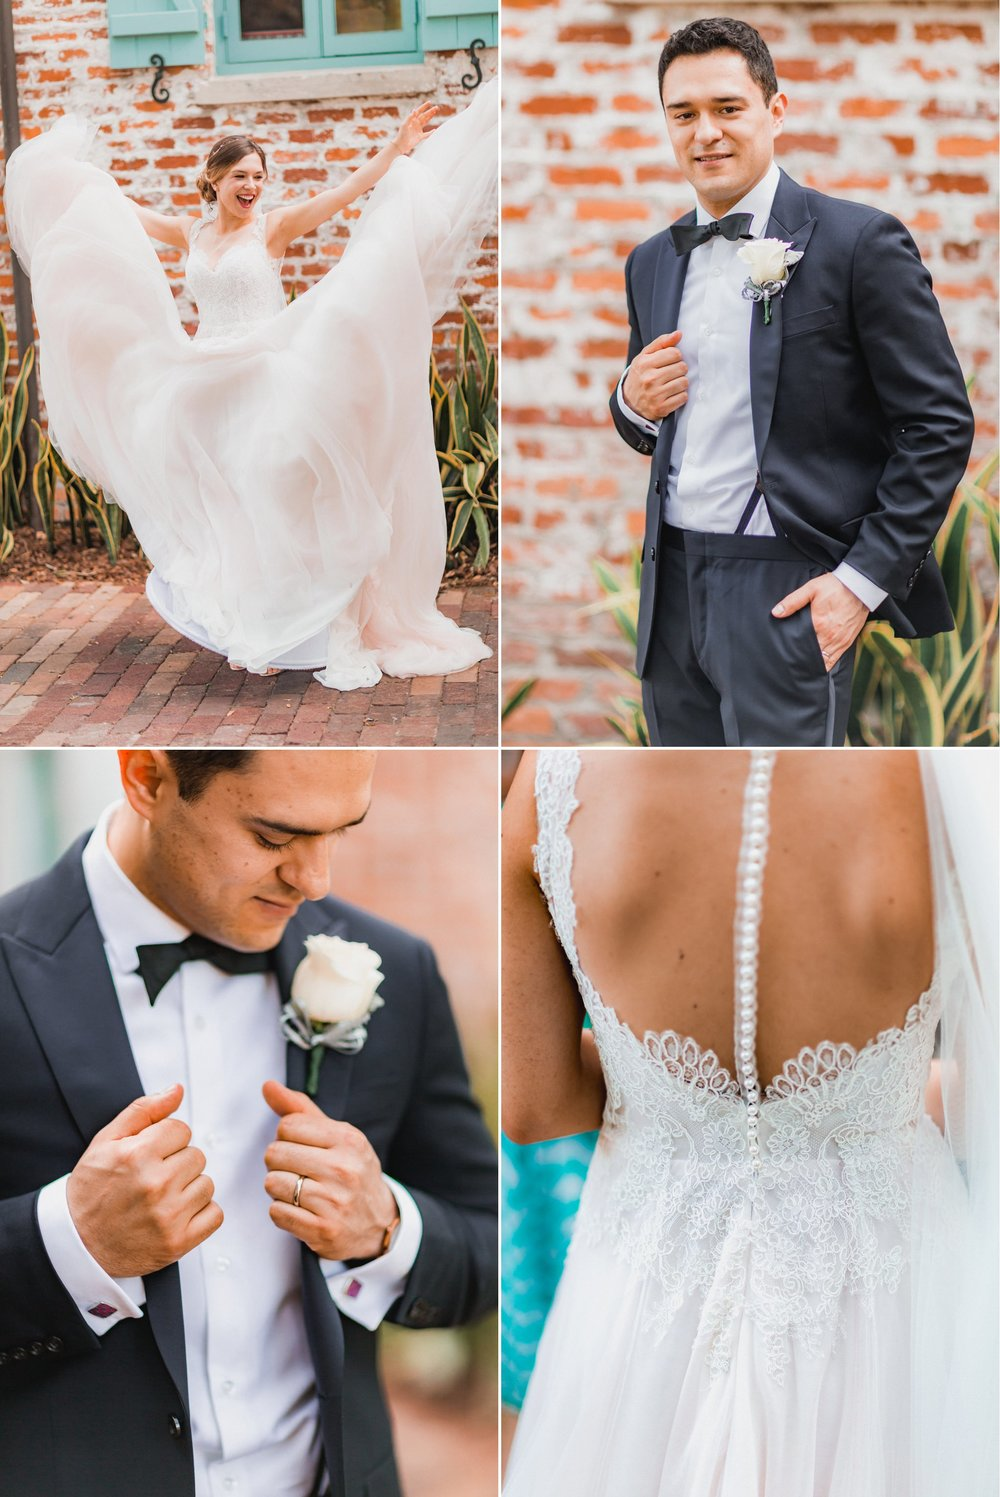 Boho Chic Blush Gold Wedding at Casa Feliz Winter Park -Andres + Elya 170.jpg